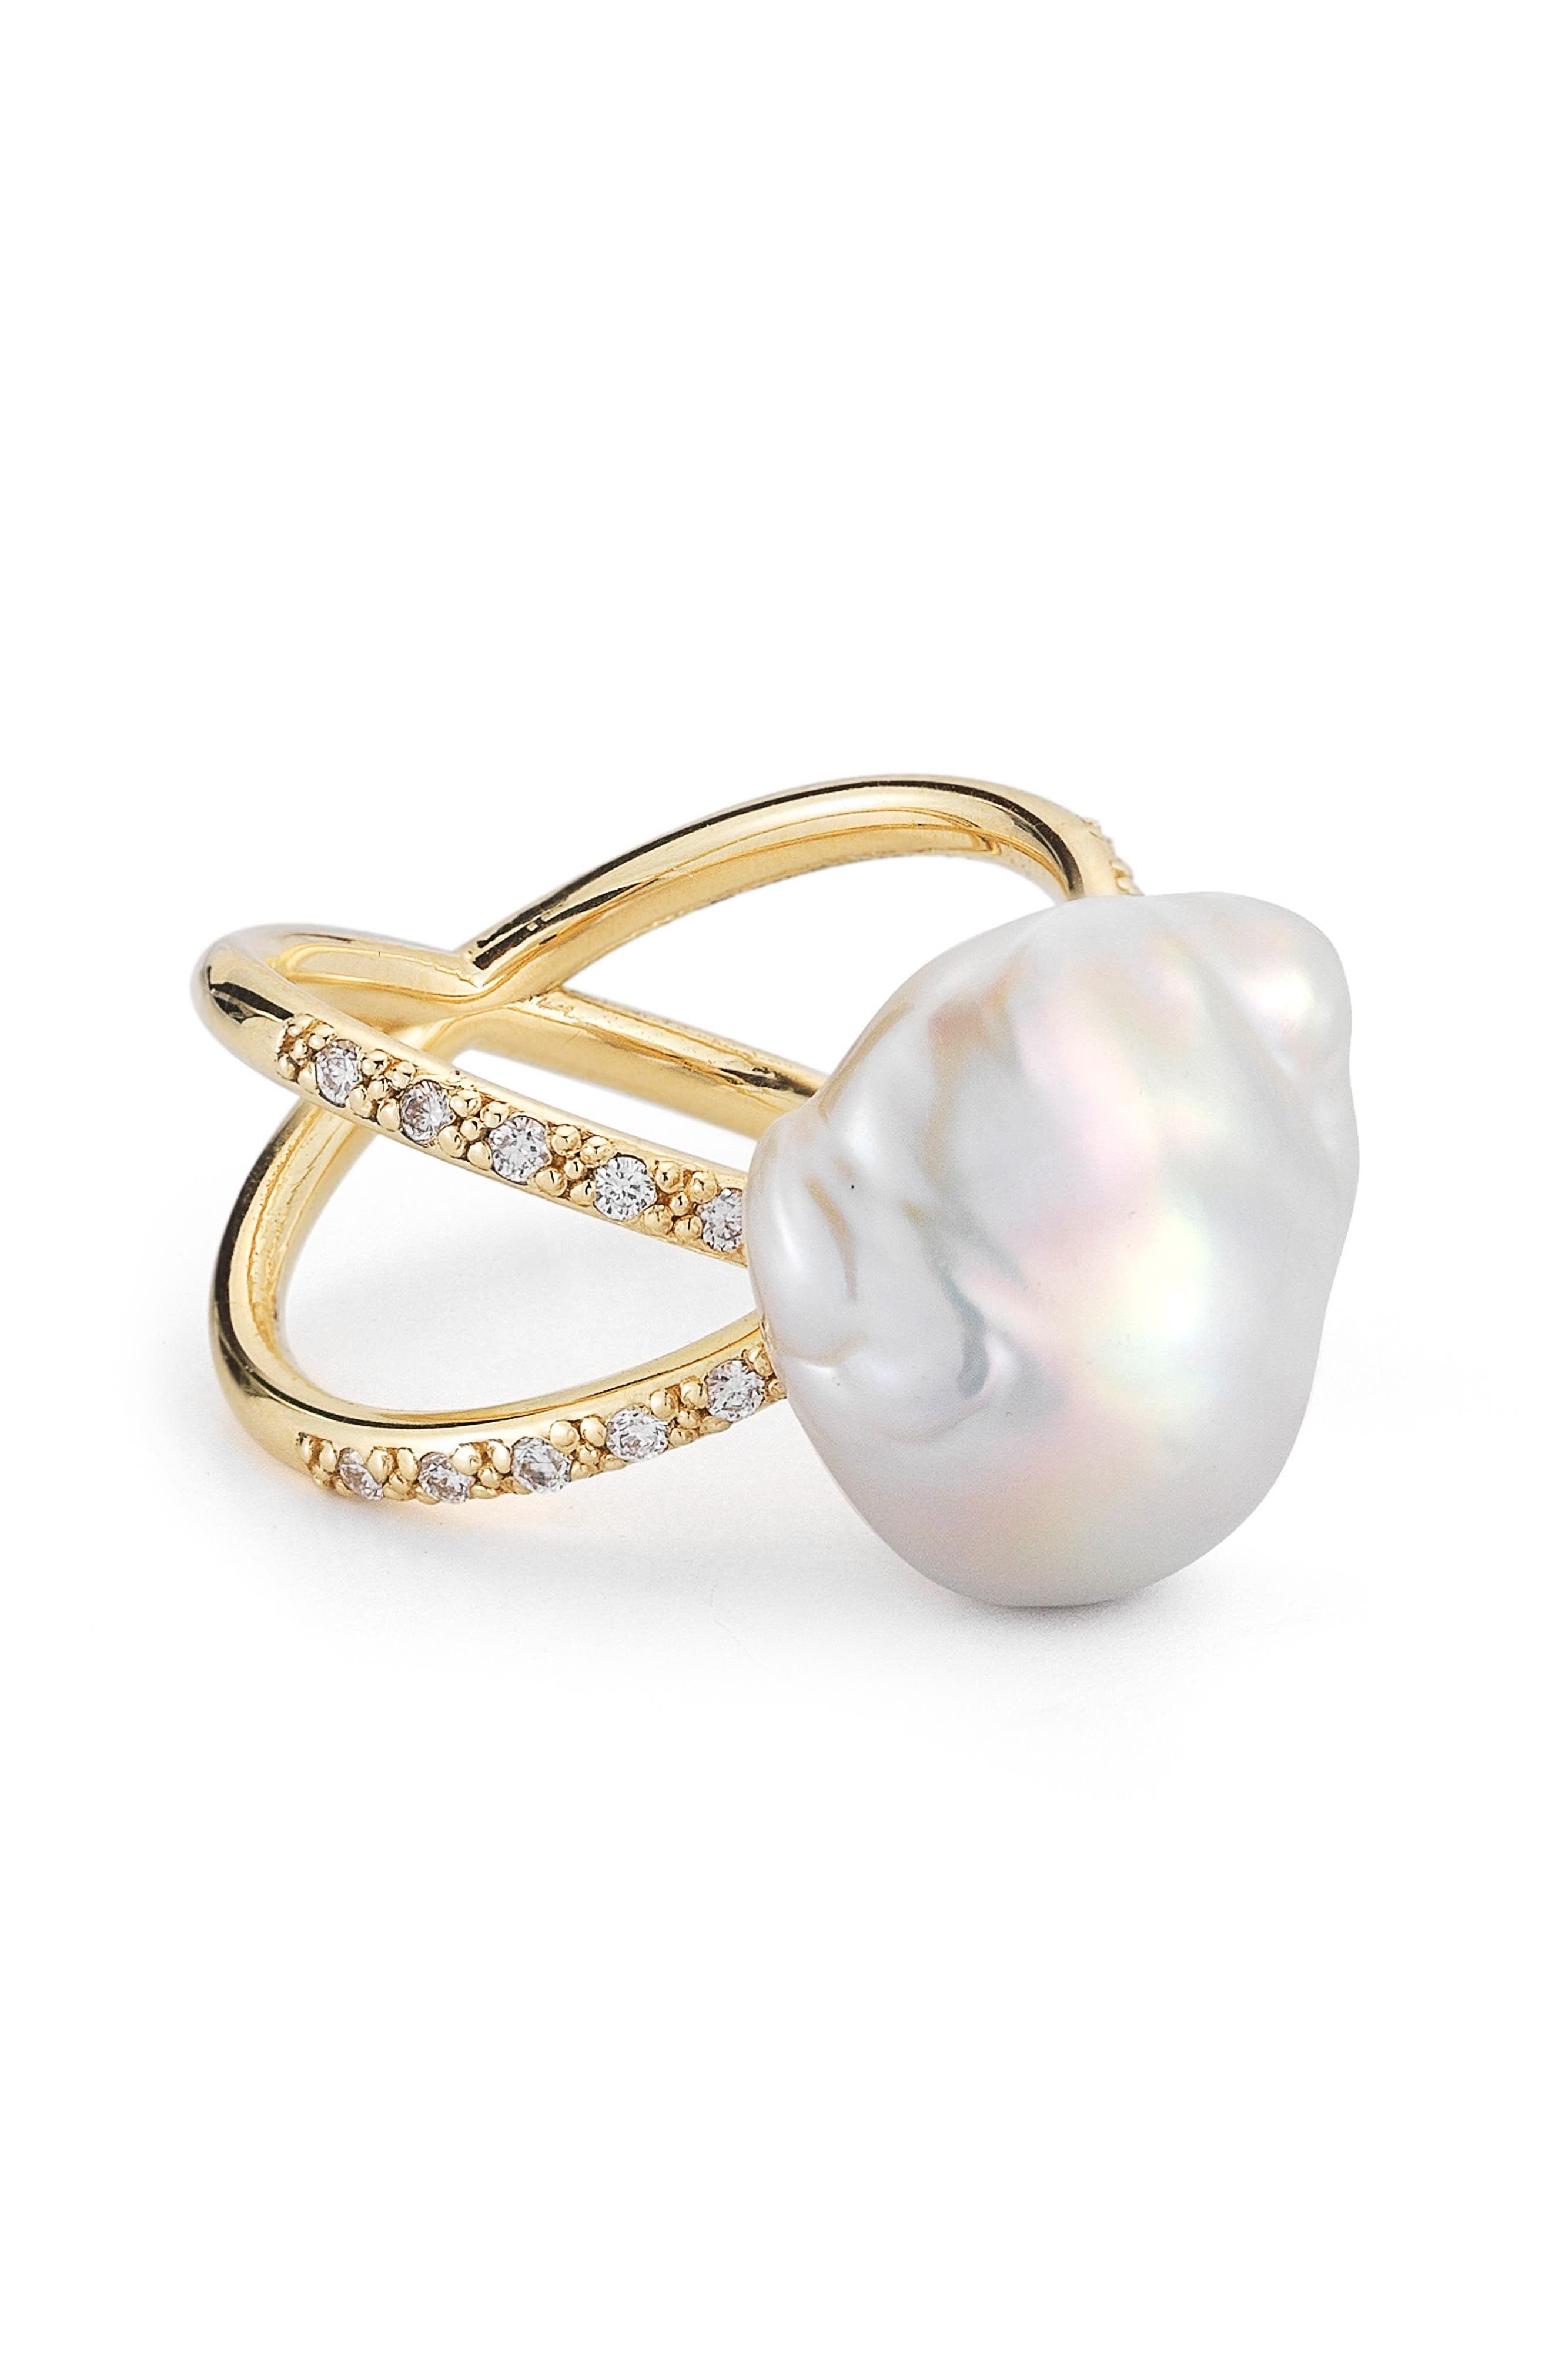 Pearl & Diamond Crossover Ring,                         Main,                         color, YELLOW GOLD/ WHITE PEARL